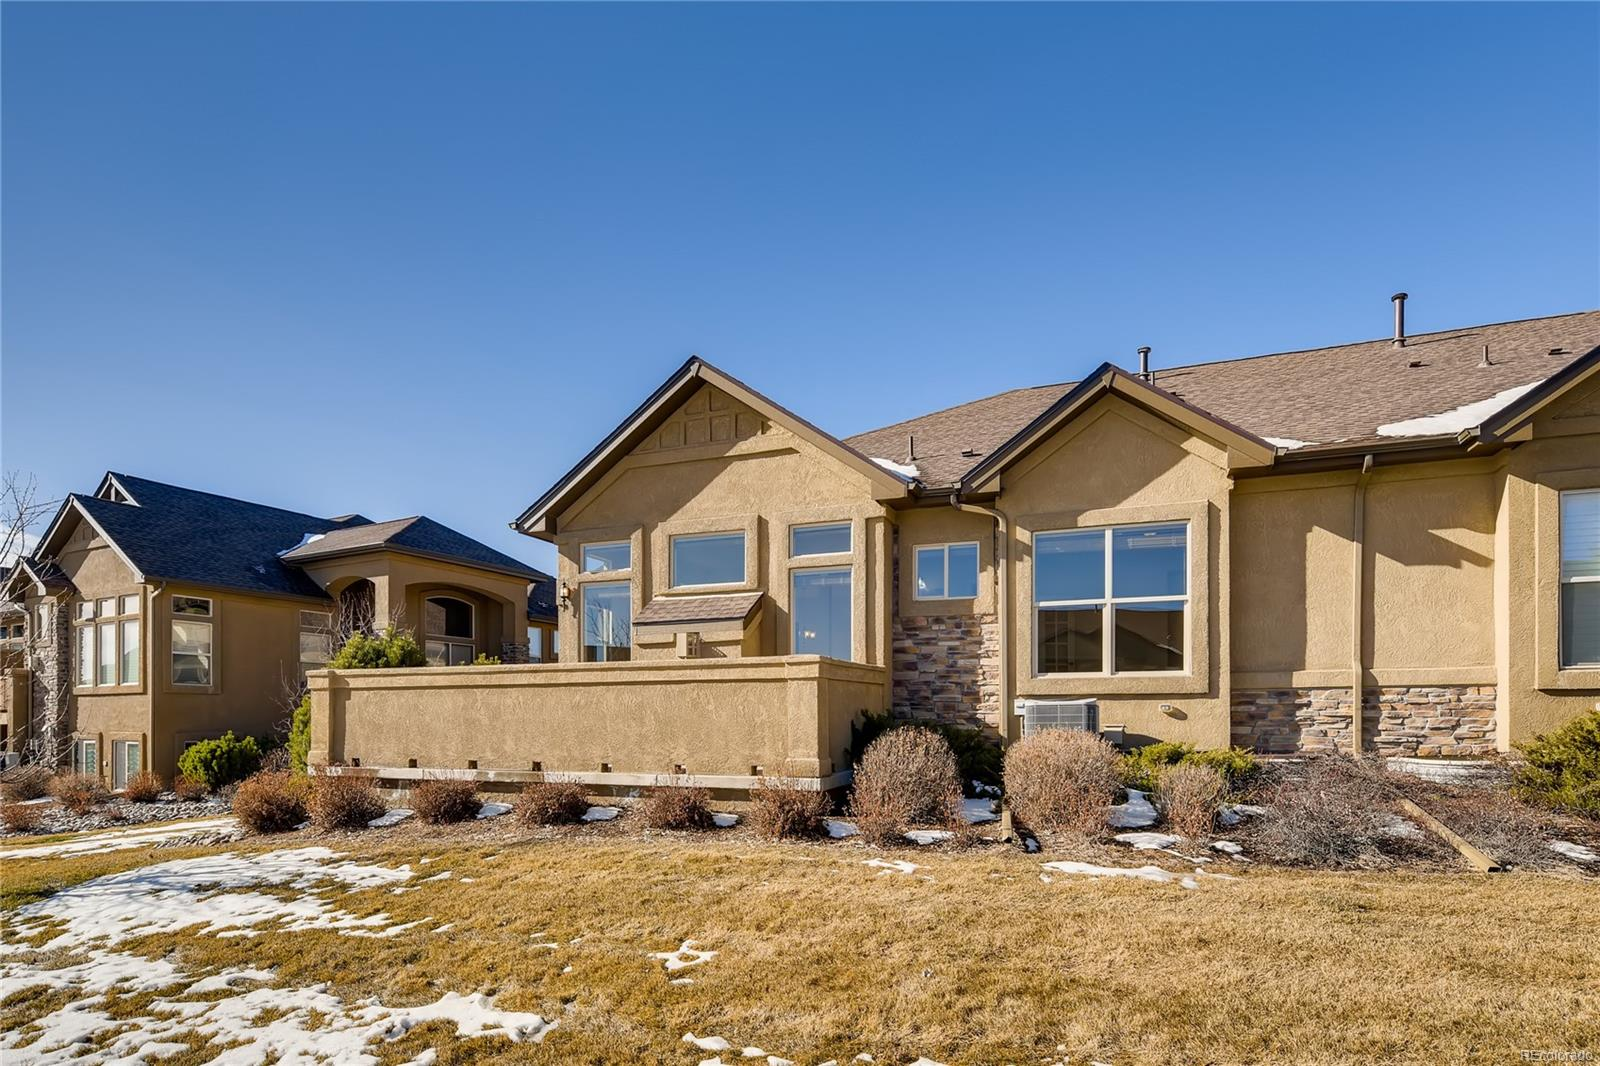 6471 Wind River Point, Colorado Springs, CO 80923 - Colorado Springs, CO real estate listing